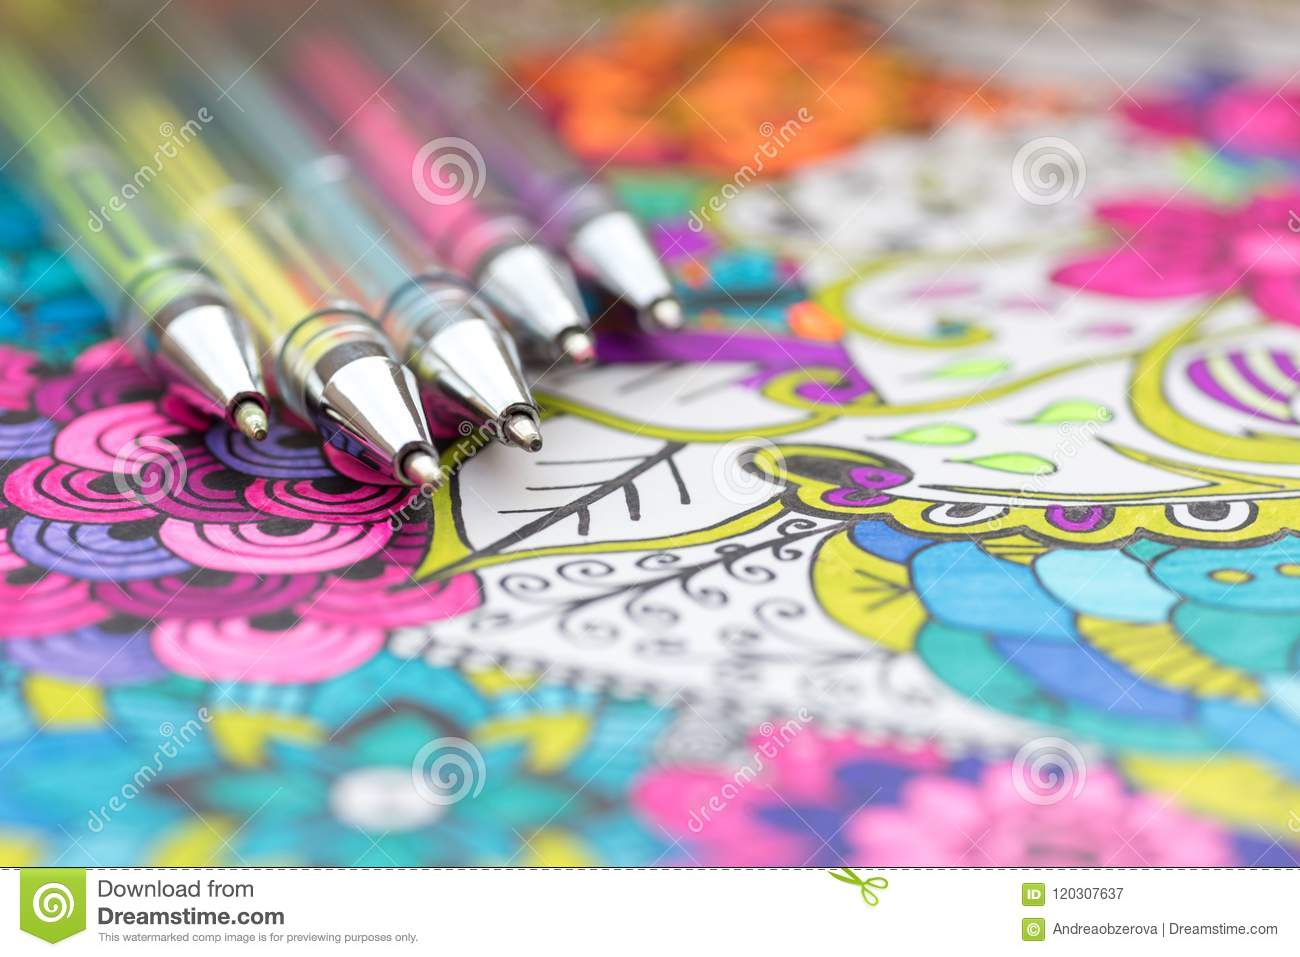 Adult coloring book, new stress relieving trend. Art therapy, mental health, creativity and mindfulness concept.